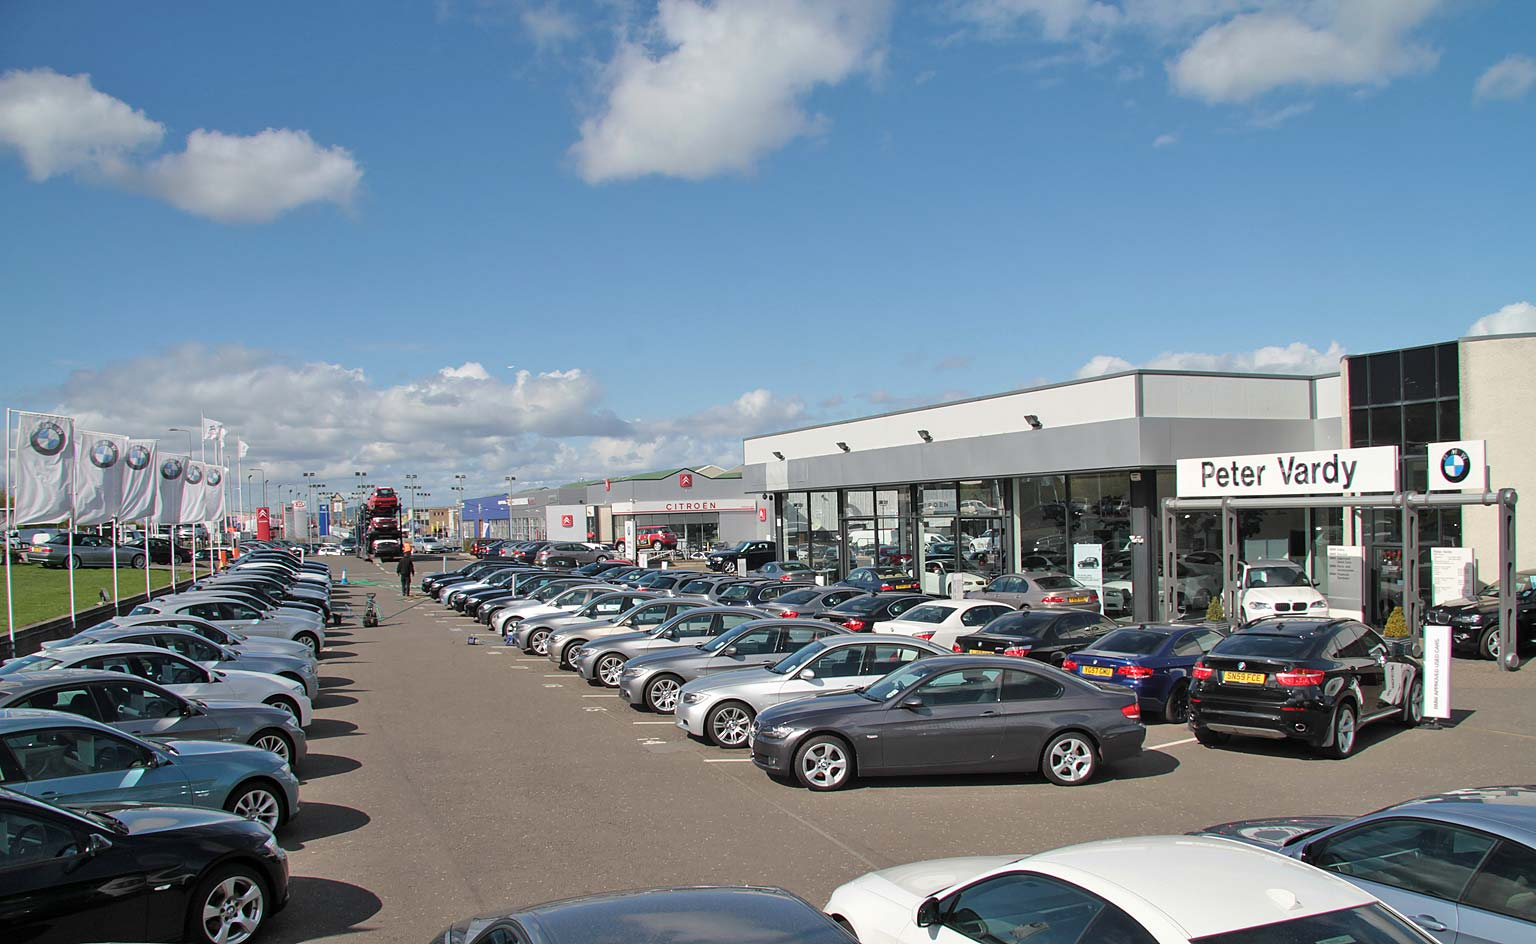 Car Dealer For Sale Uk